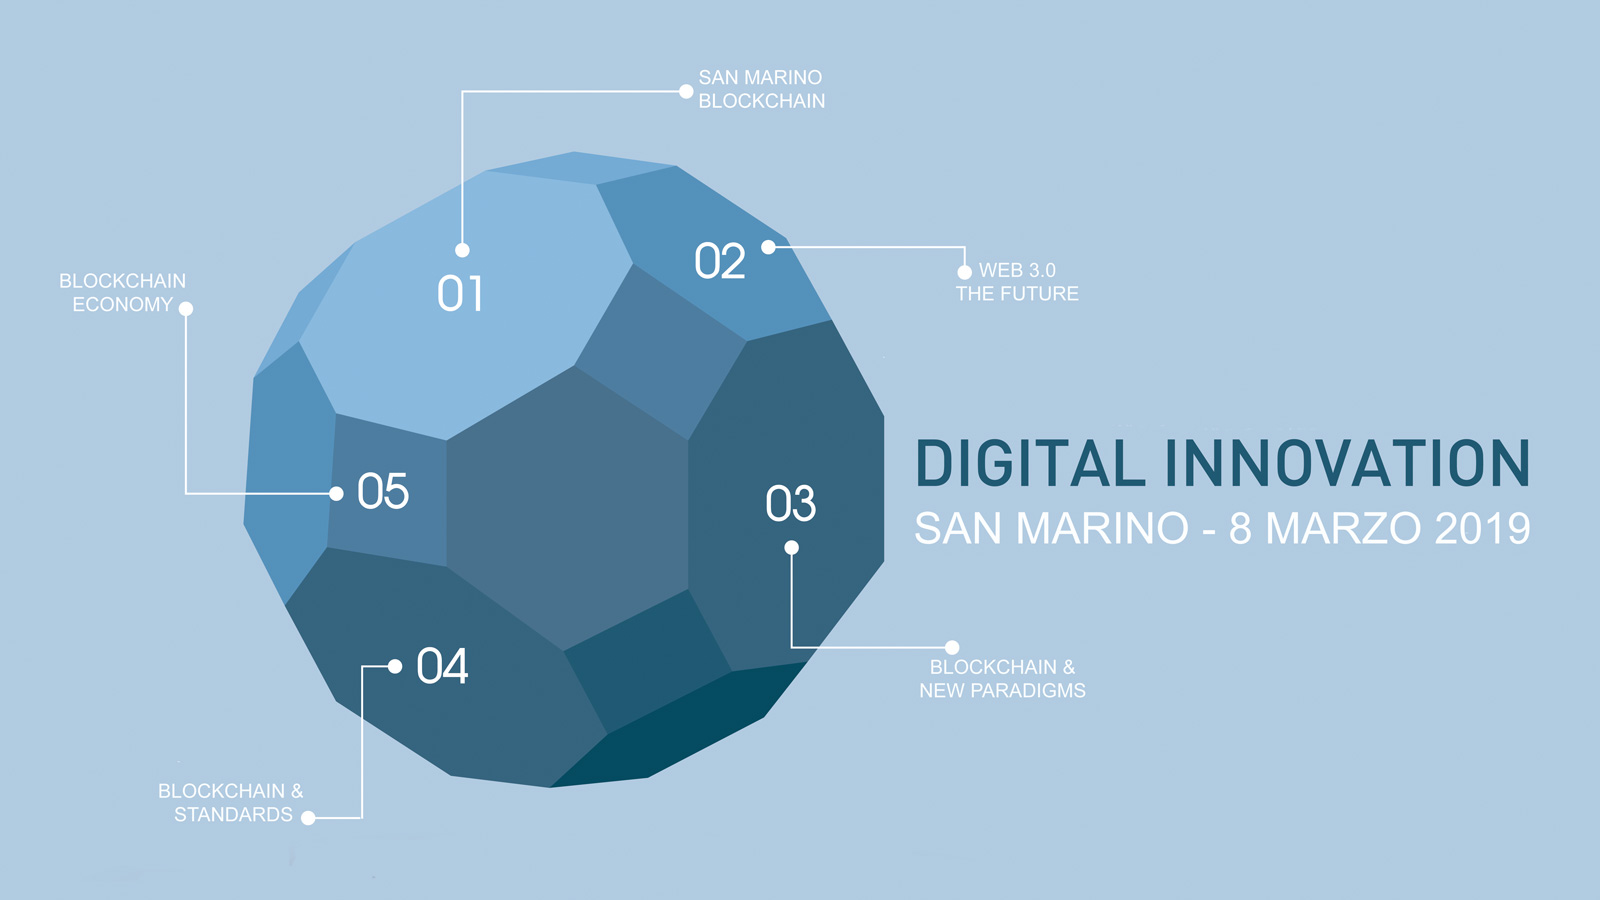 events-digital-innovation-san-marino-01-blog.jpg